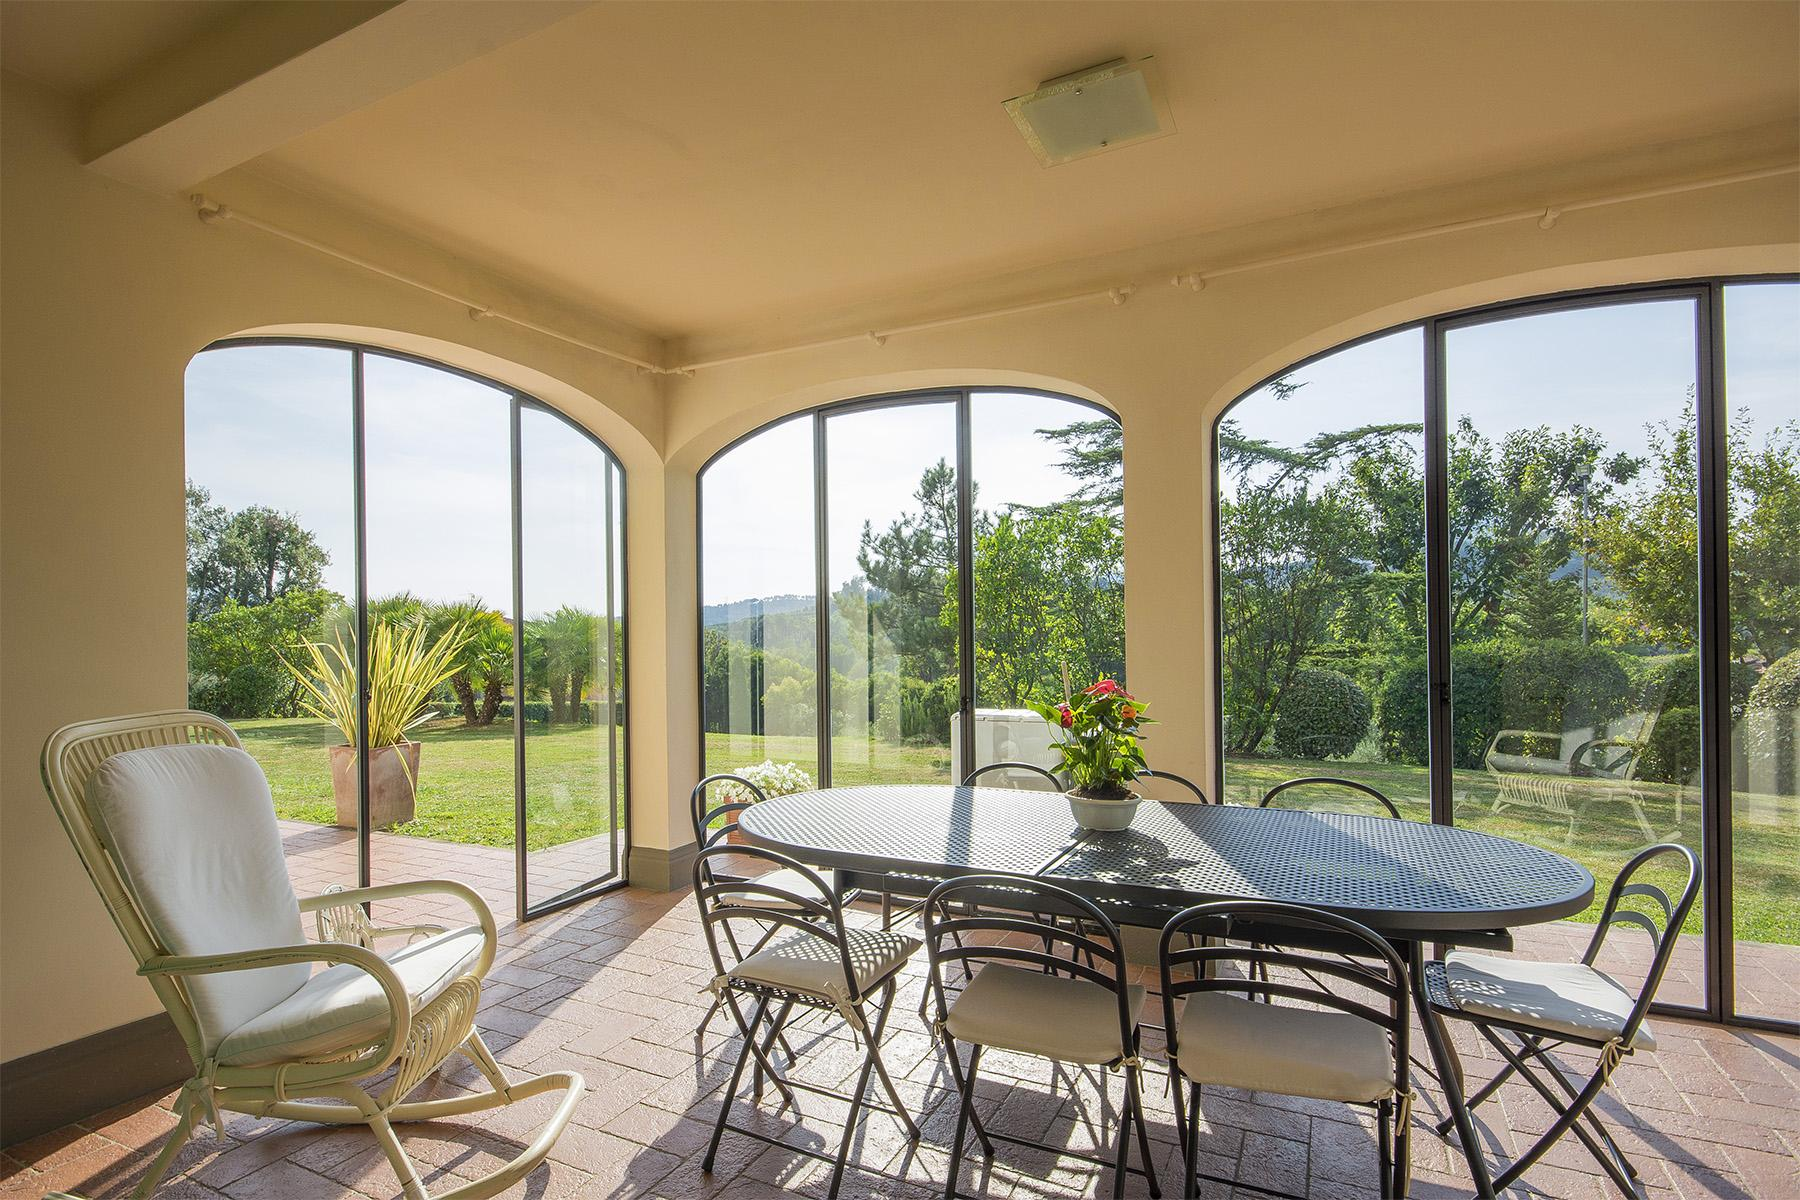 Charming luxury villa on the hills around Lucca - 5